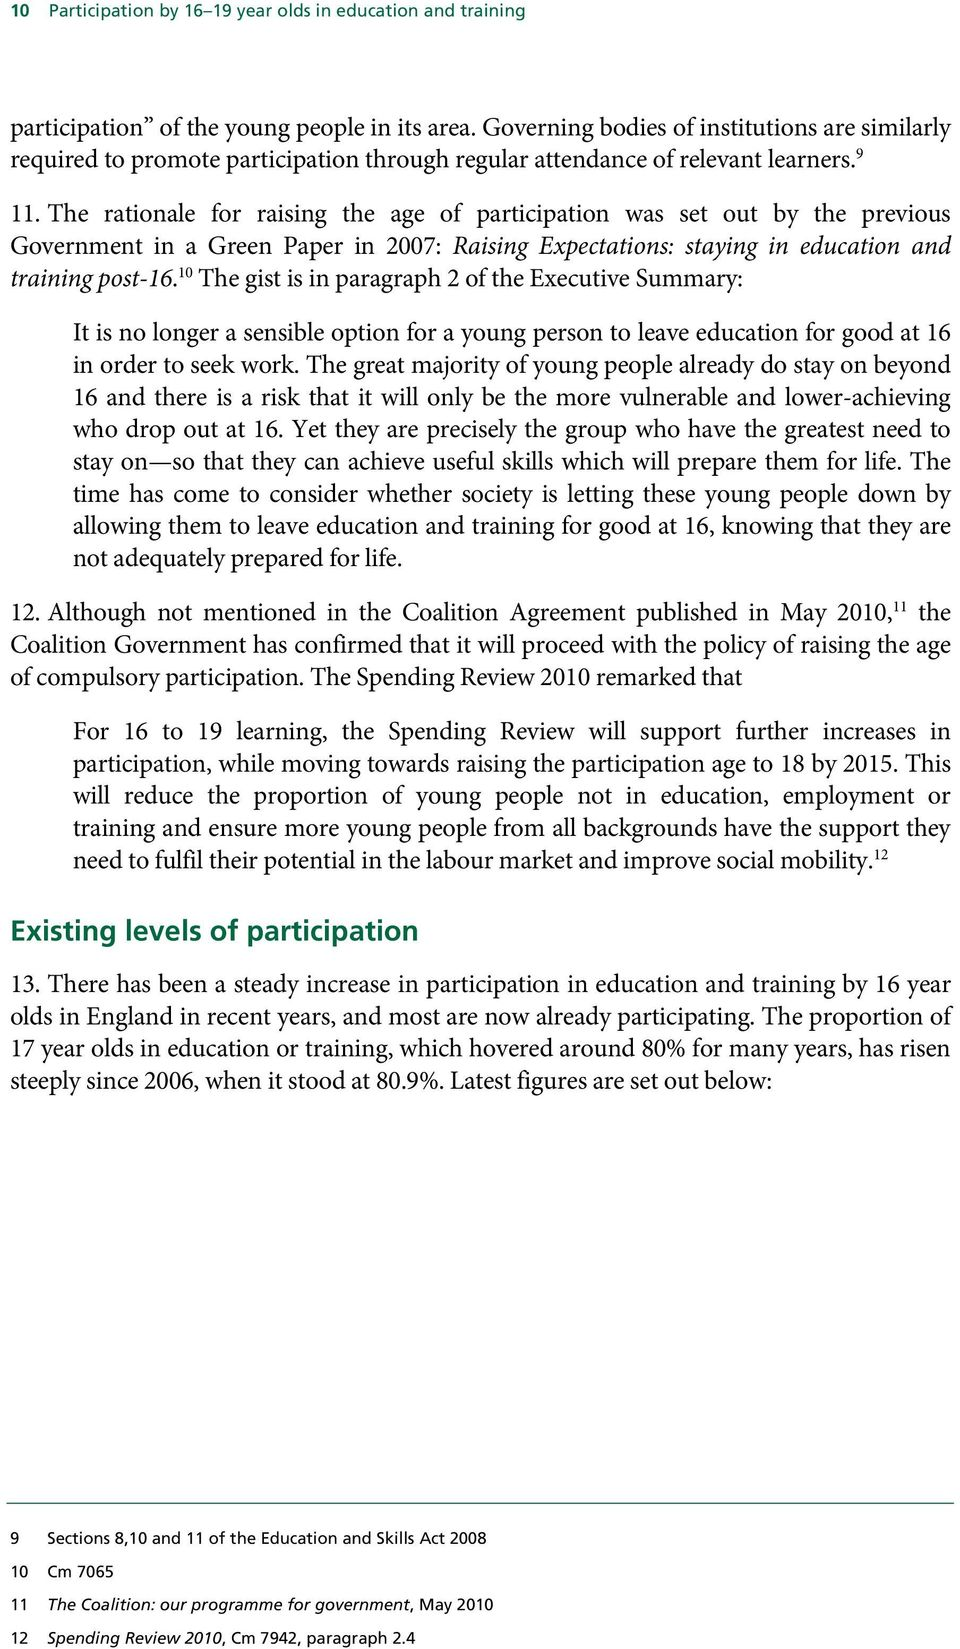 The rationale for raising the age of participation was set out by the previous Government in a Green Paper in 2007: Raising Expectations: staying in education and training post-16.